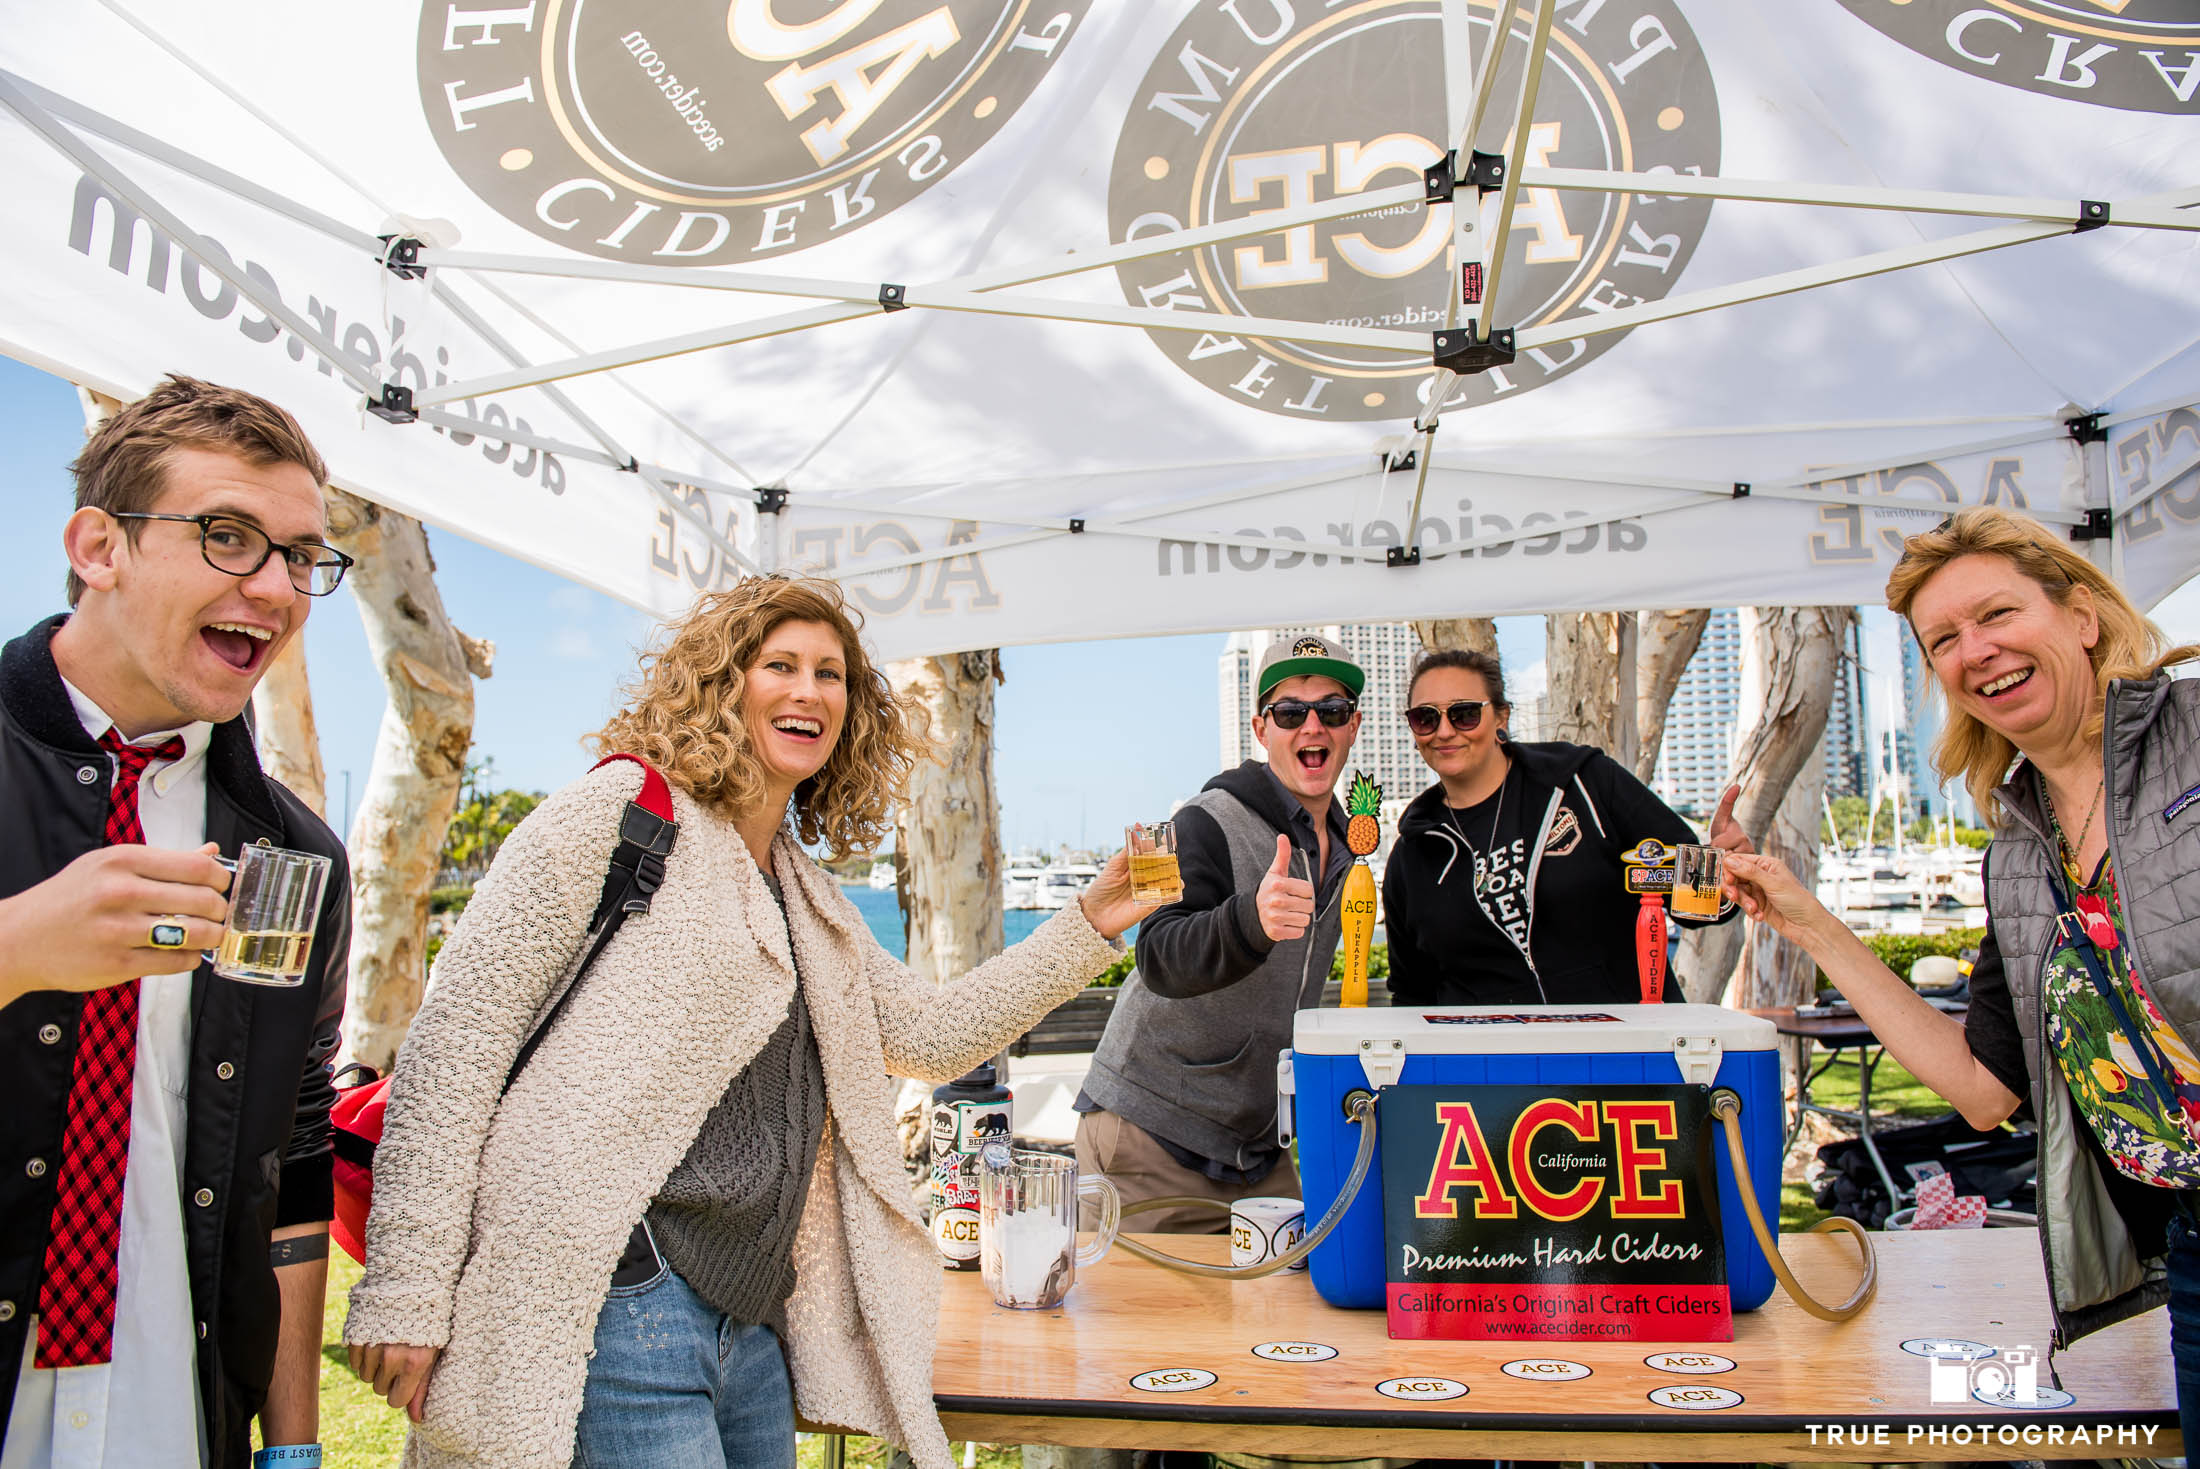 Event goers pose for group photo at ACE Cider Booth during Best Coast Beer Fest